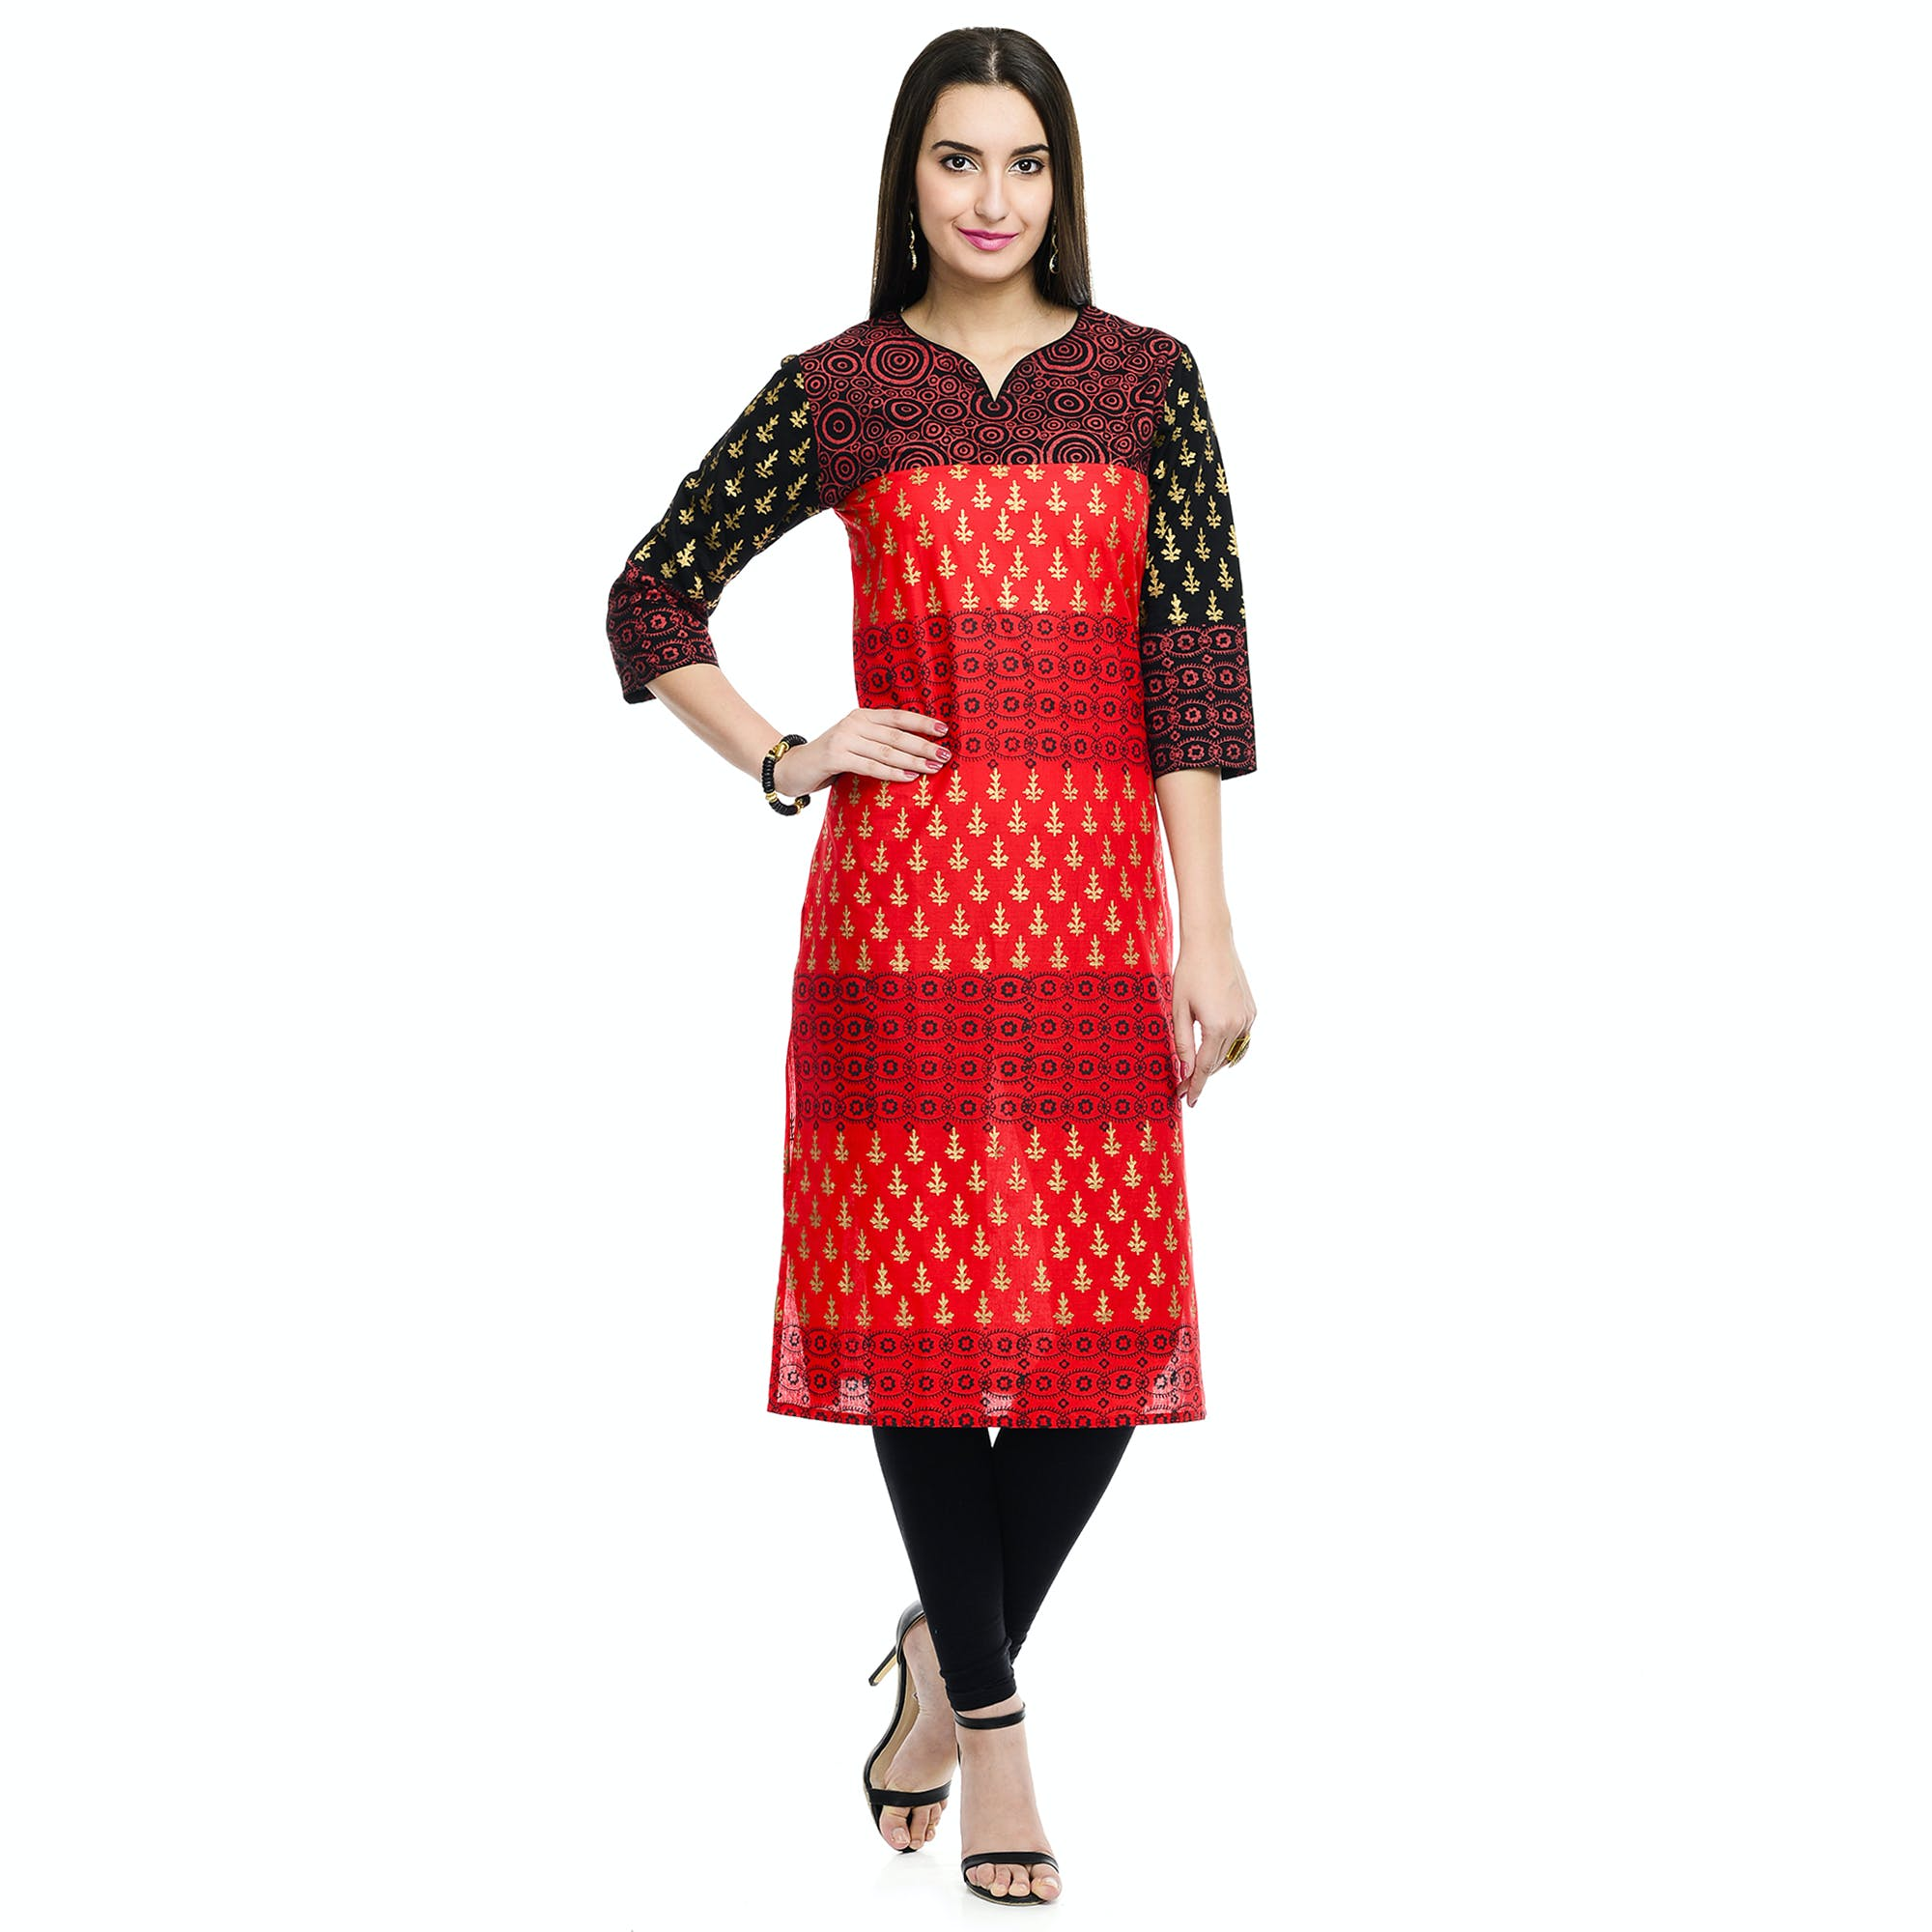 Woman in Red and Black 3/4 Sleeve Midi Dress